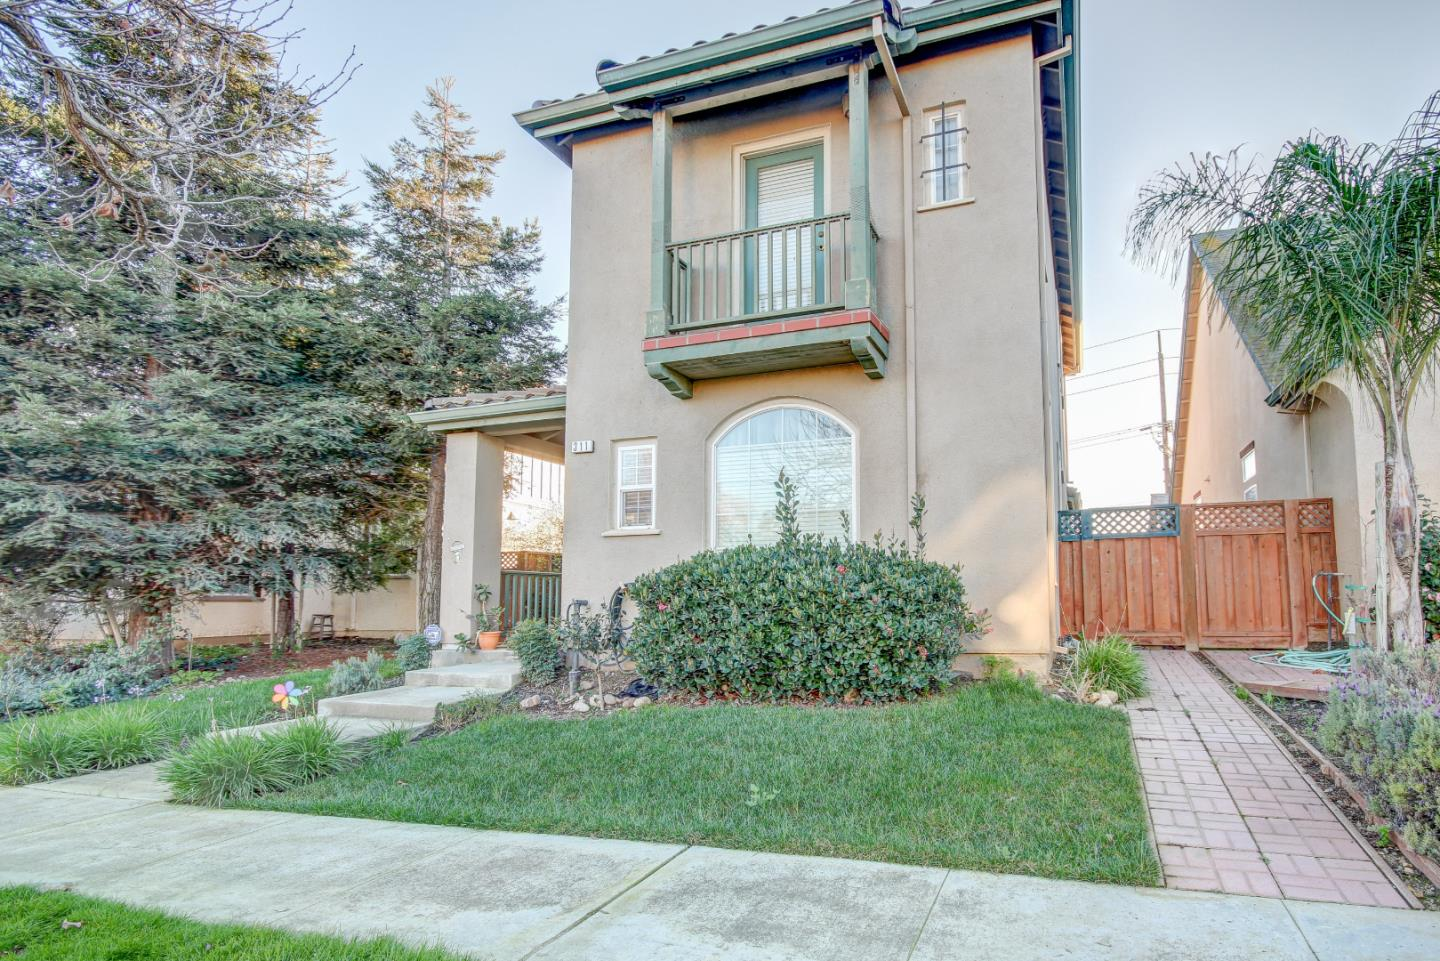 Detail Gallery Image 1 of 1 For 311 Saint Matthews St, Greenfield, CA, 93927 - 3 Beds | 2/1 Baths